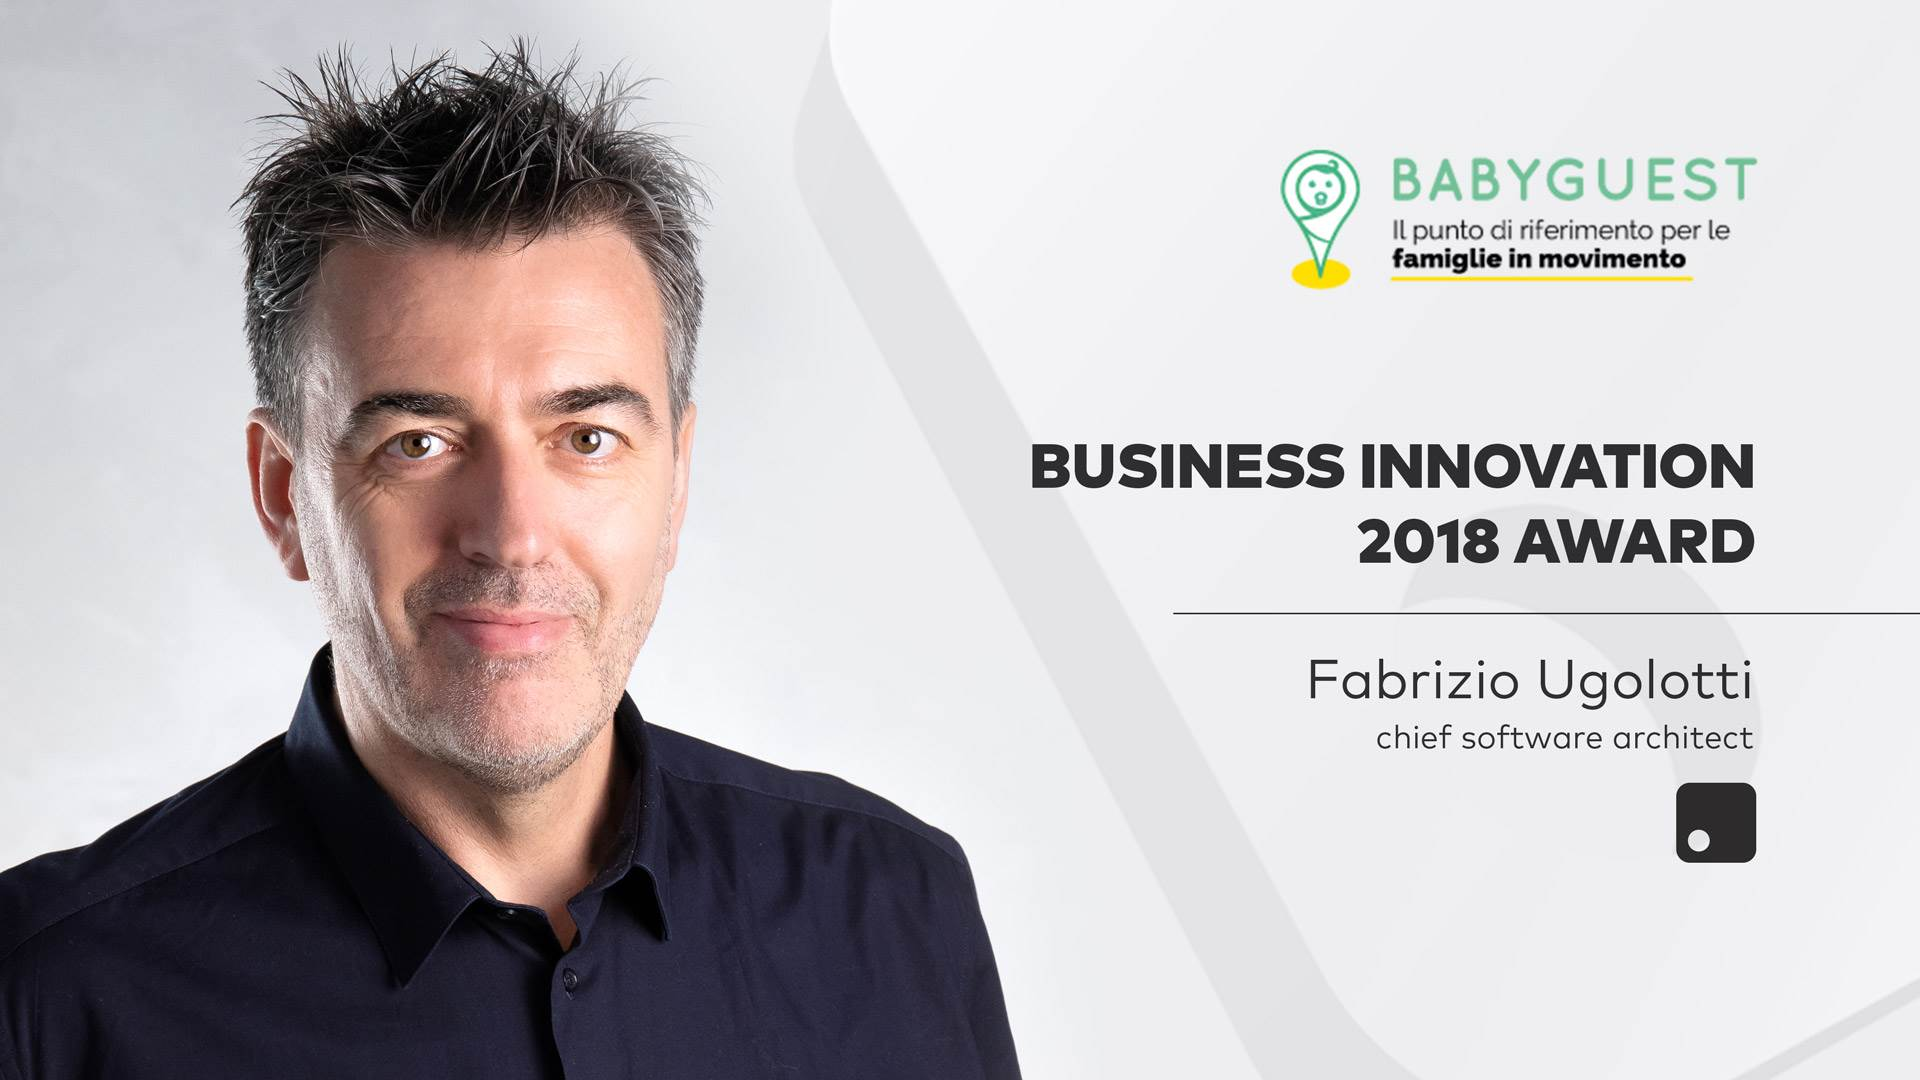 BabyGuest.comPremio Business Innovation 2018